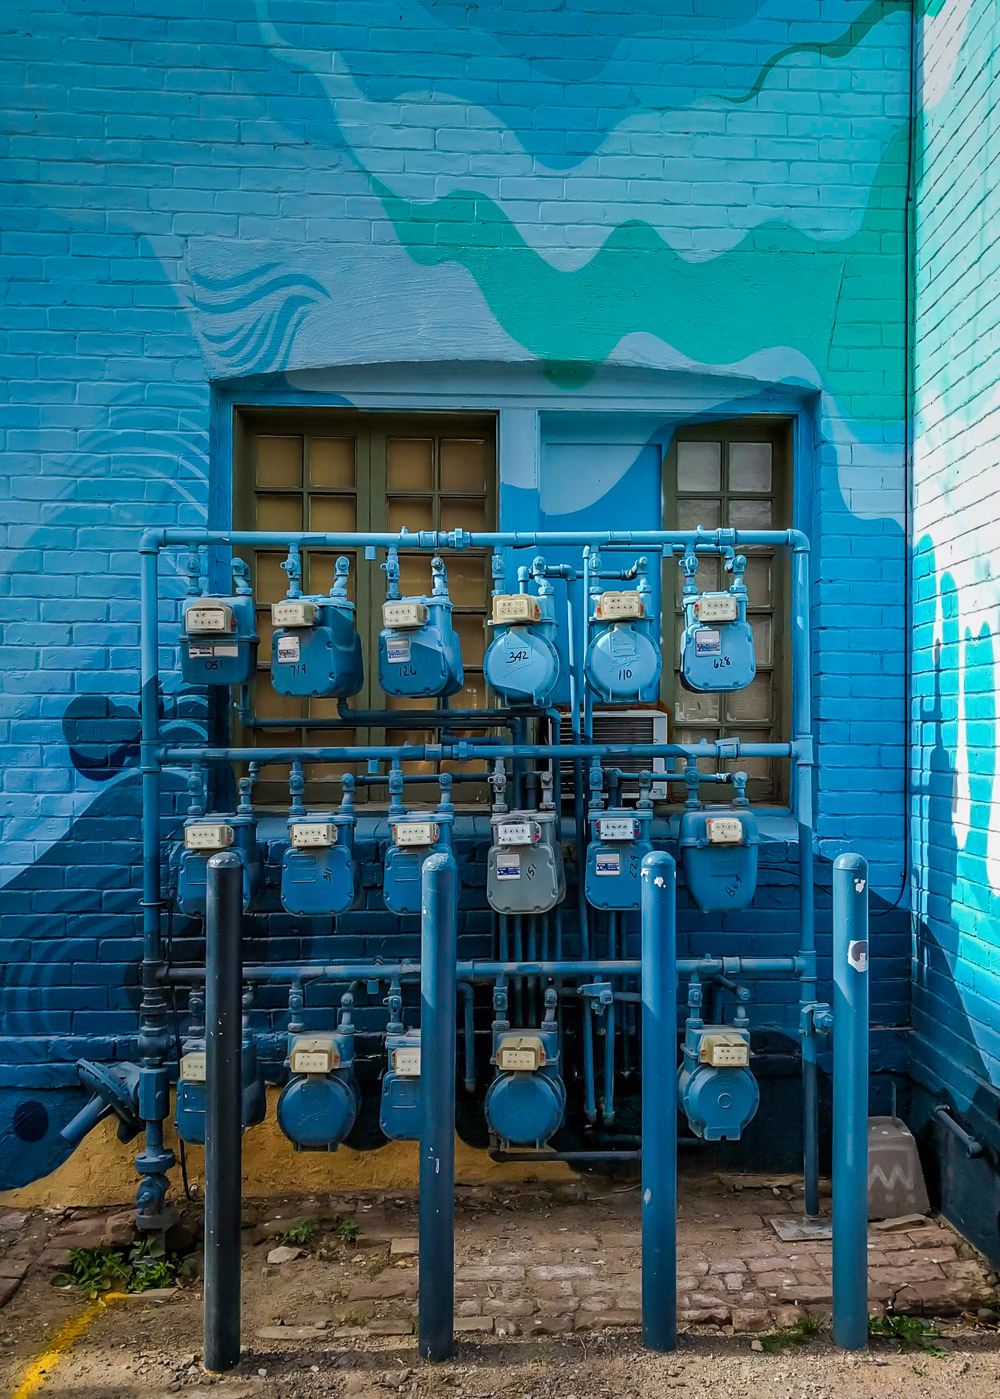 Graphic gas meters.